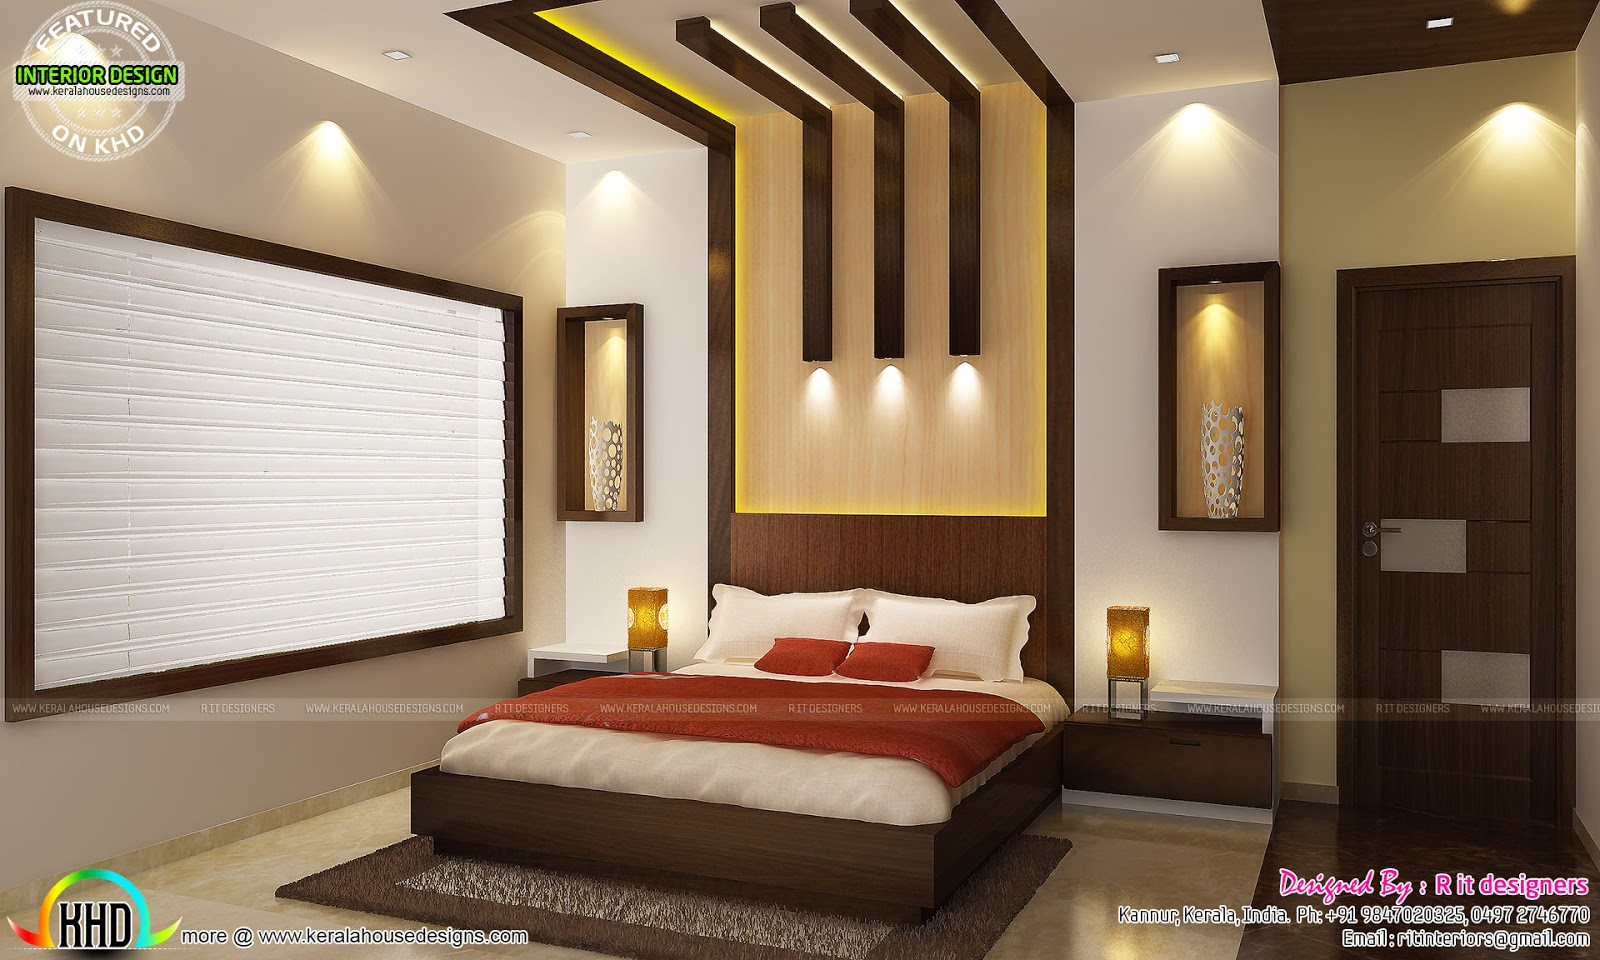 Kitchen living bedroom dining interior decor kerala for Room ideas for